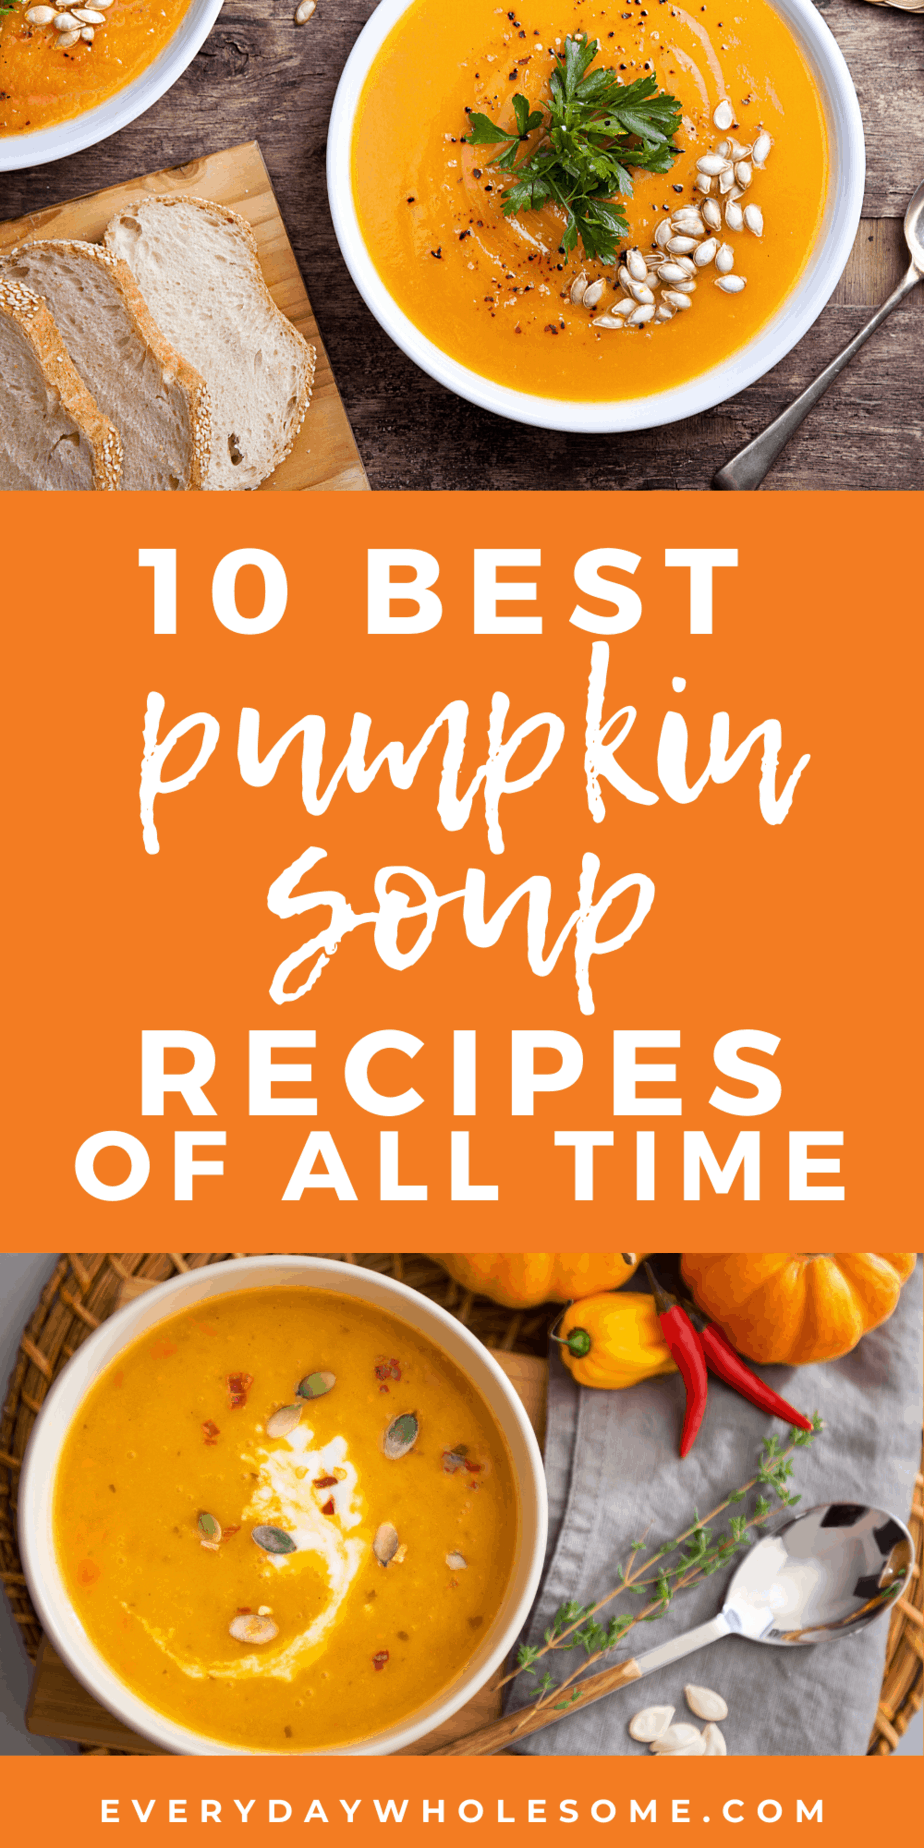 10 best pumpkin soup recipes of all time pin